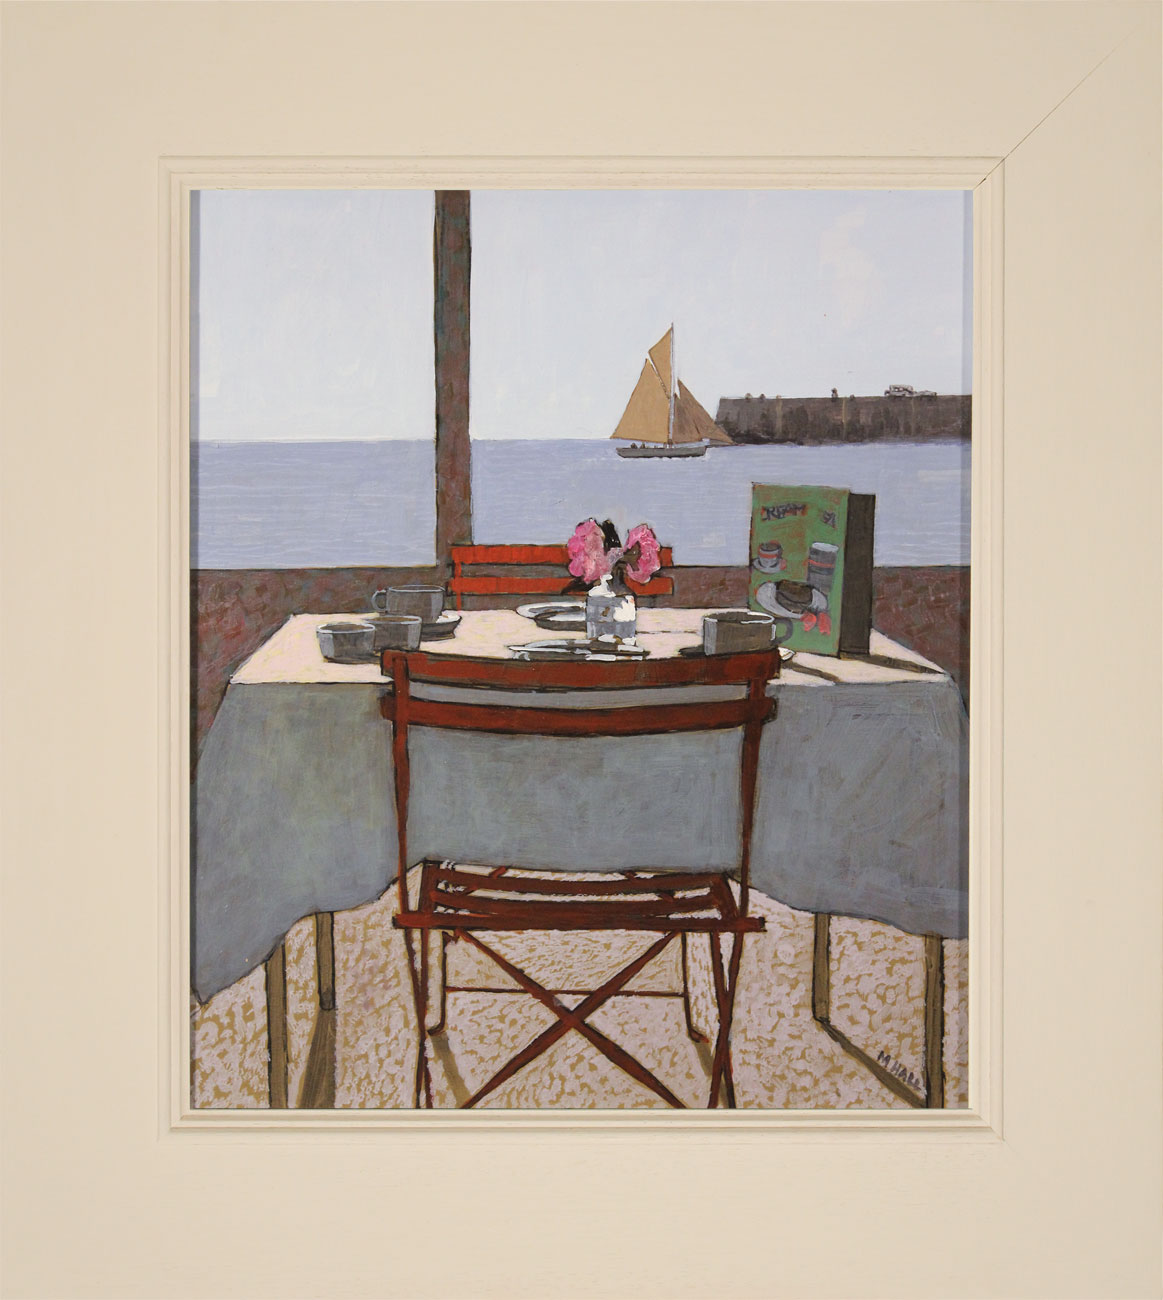 Mike Hall, Original acrylic painting on board, View from the Dining Table Click to enlarge